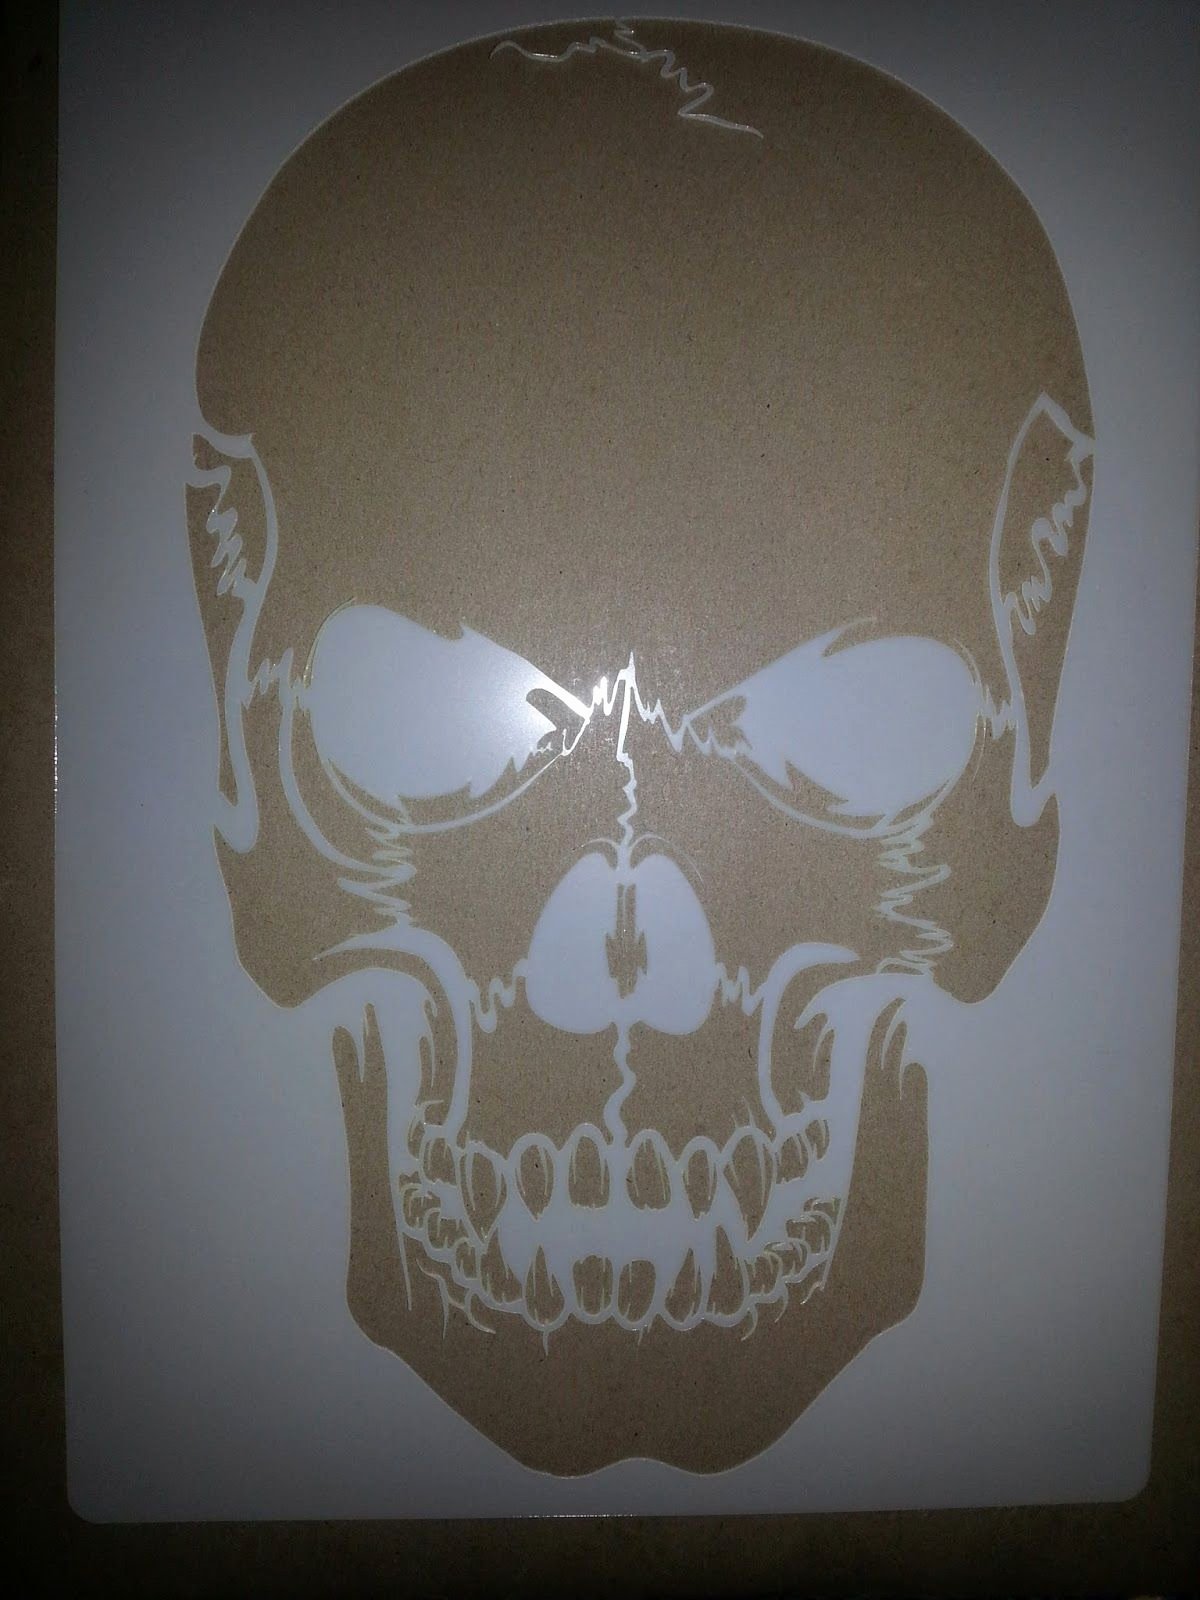 Free Airbrush Stencils Downloads Inspirational Test Try =results Airsick Airbrush Stencil Templates